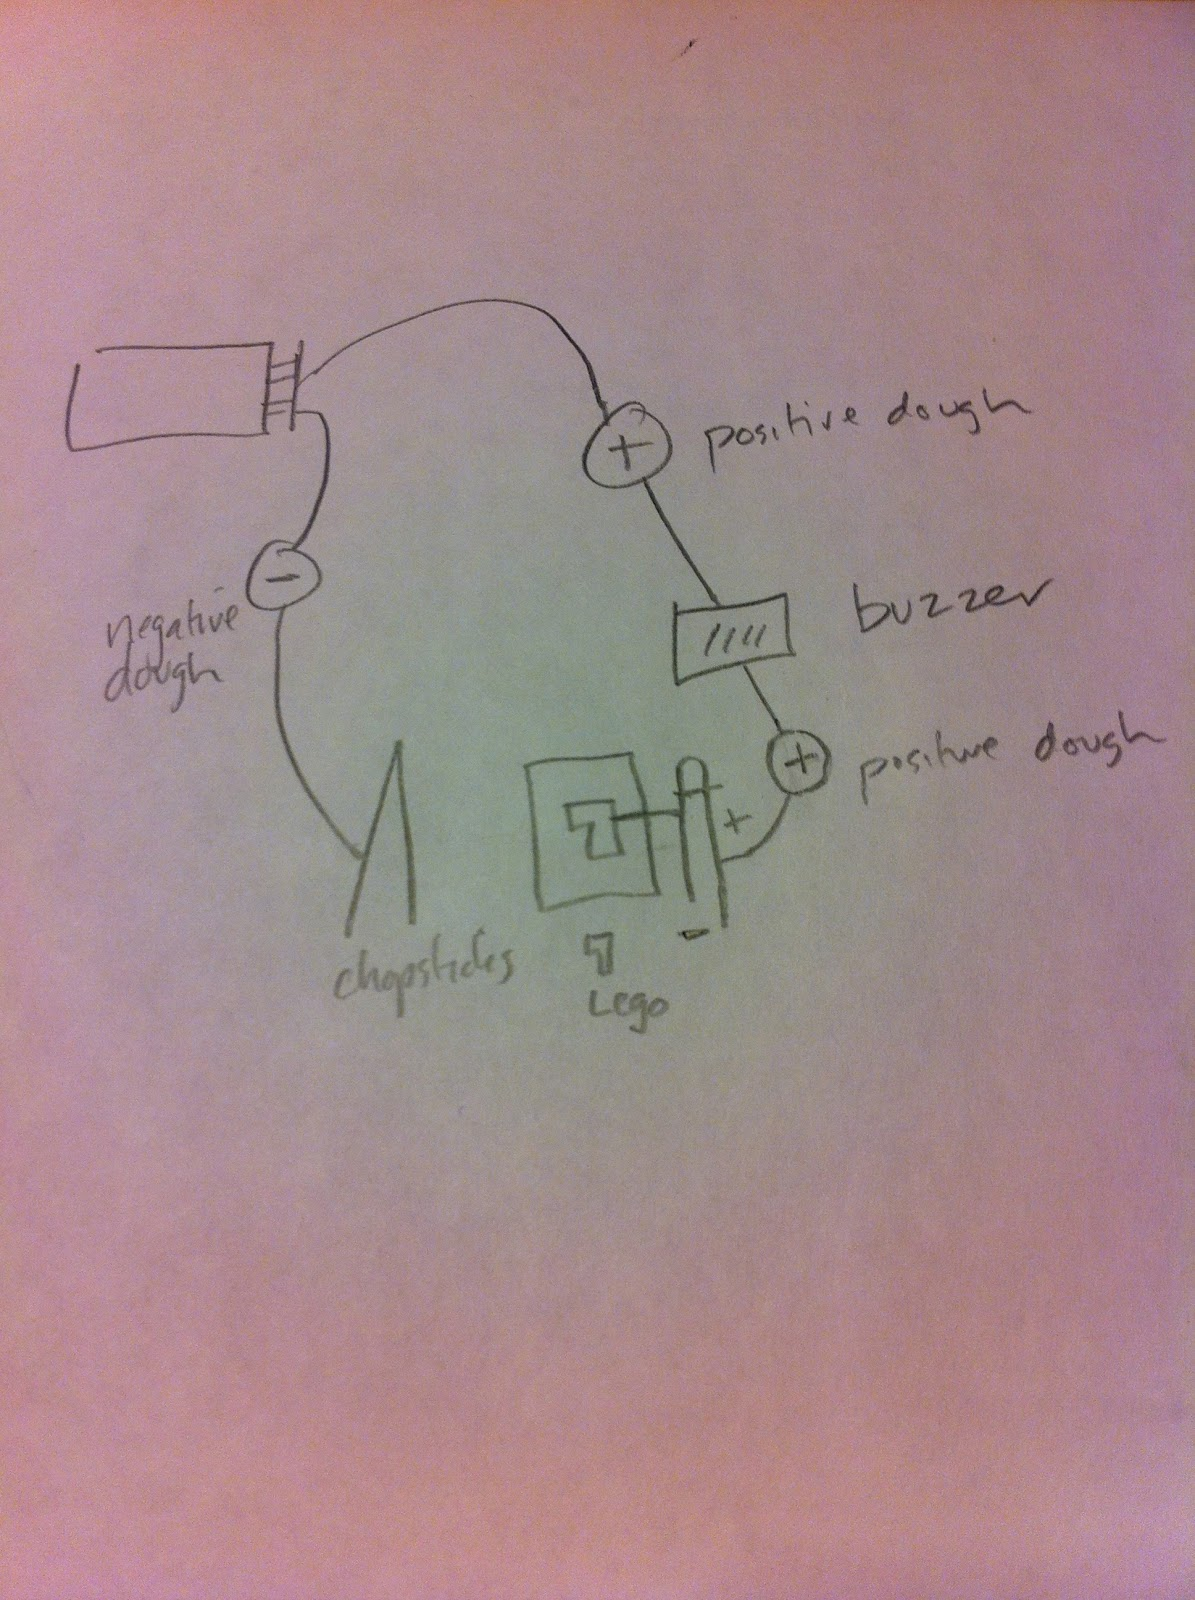 Squishy Circuits Operation Game Making Conductive Dough Here Is The Circuit Schematic For